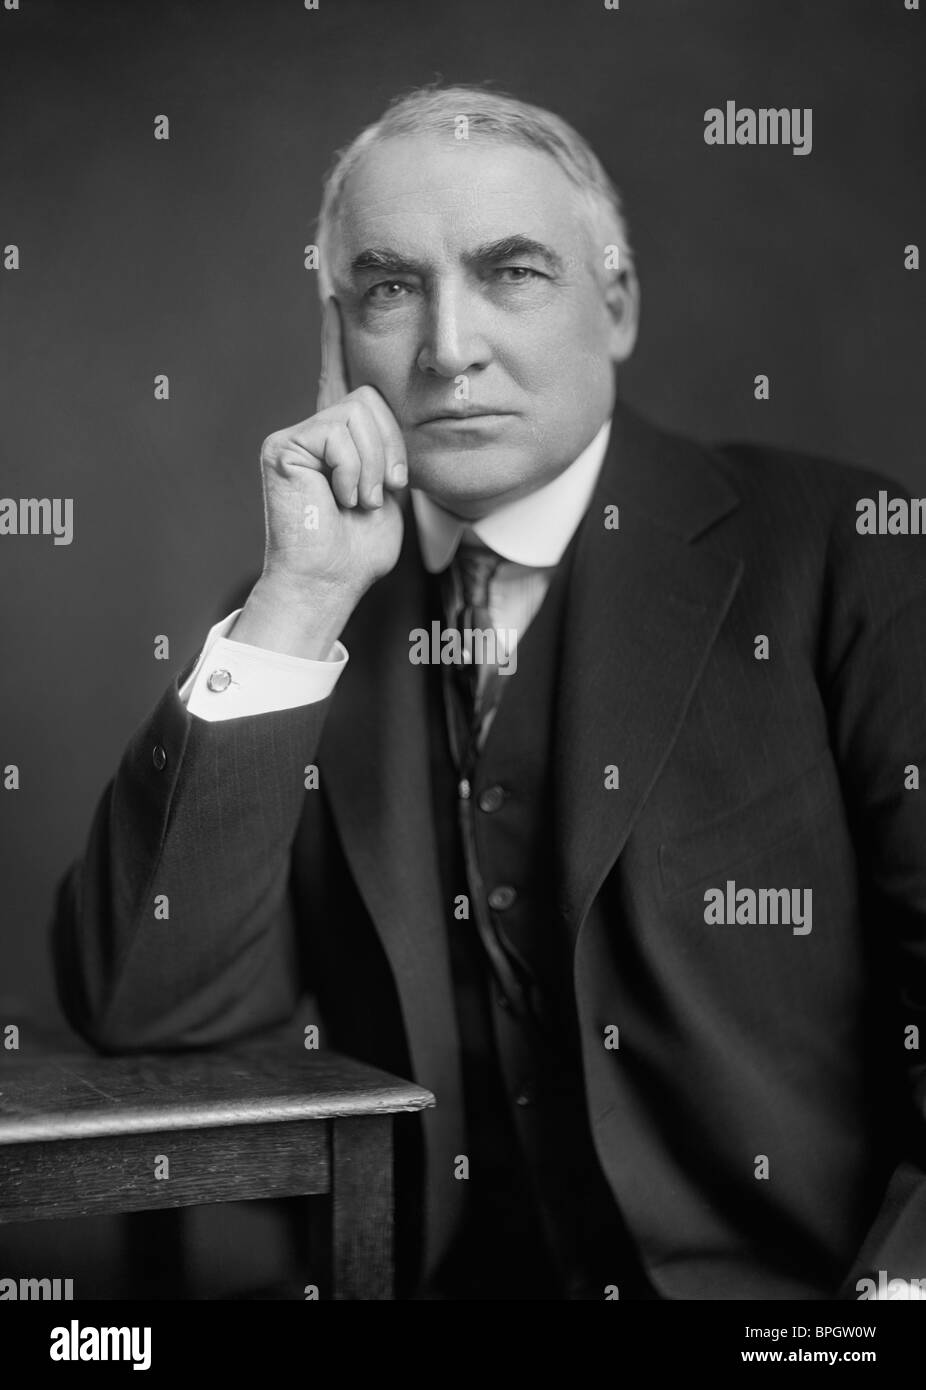 Portrait photo circa 1920 of Warren G. Harding (1865 - 1923) - the 29th US President (1921 - 1923). - Stock Image